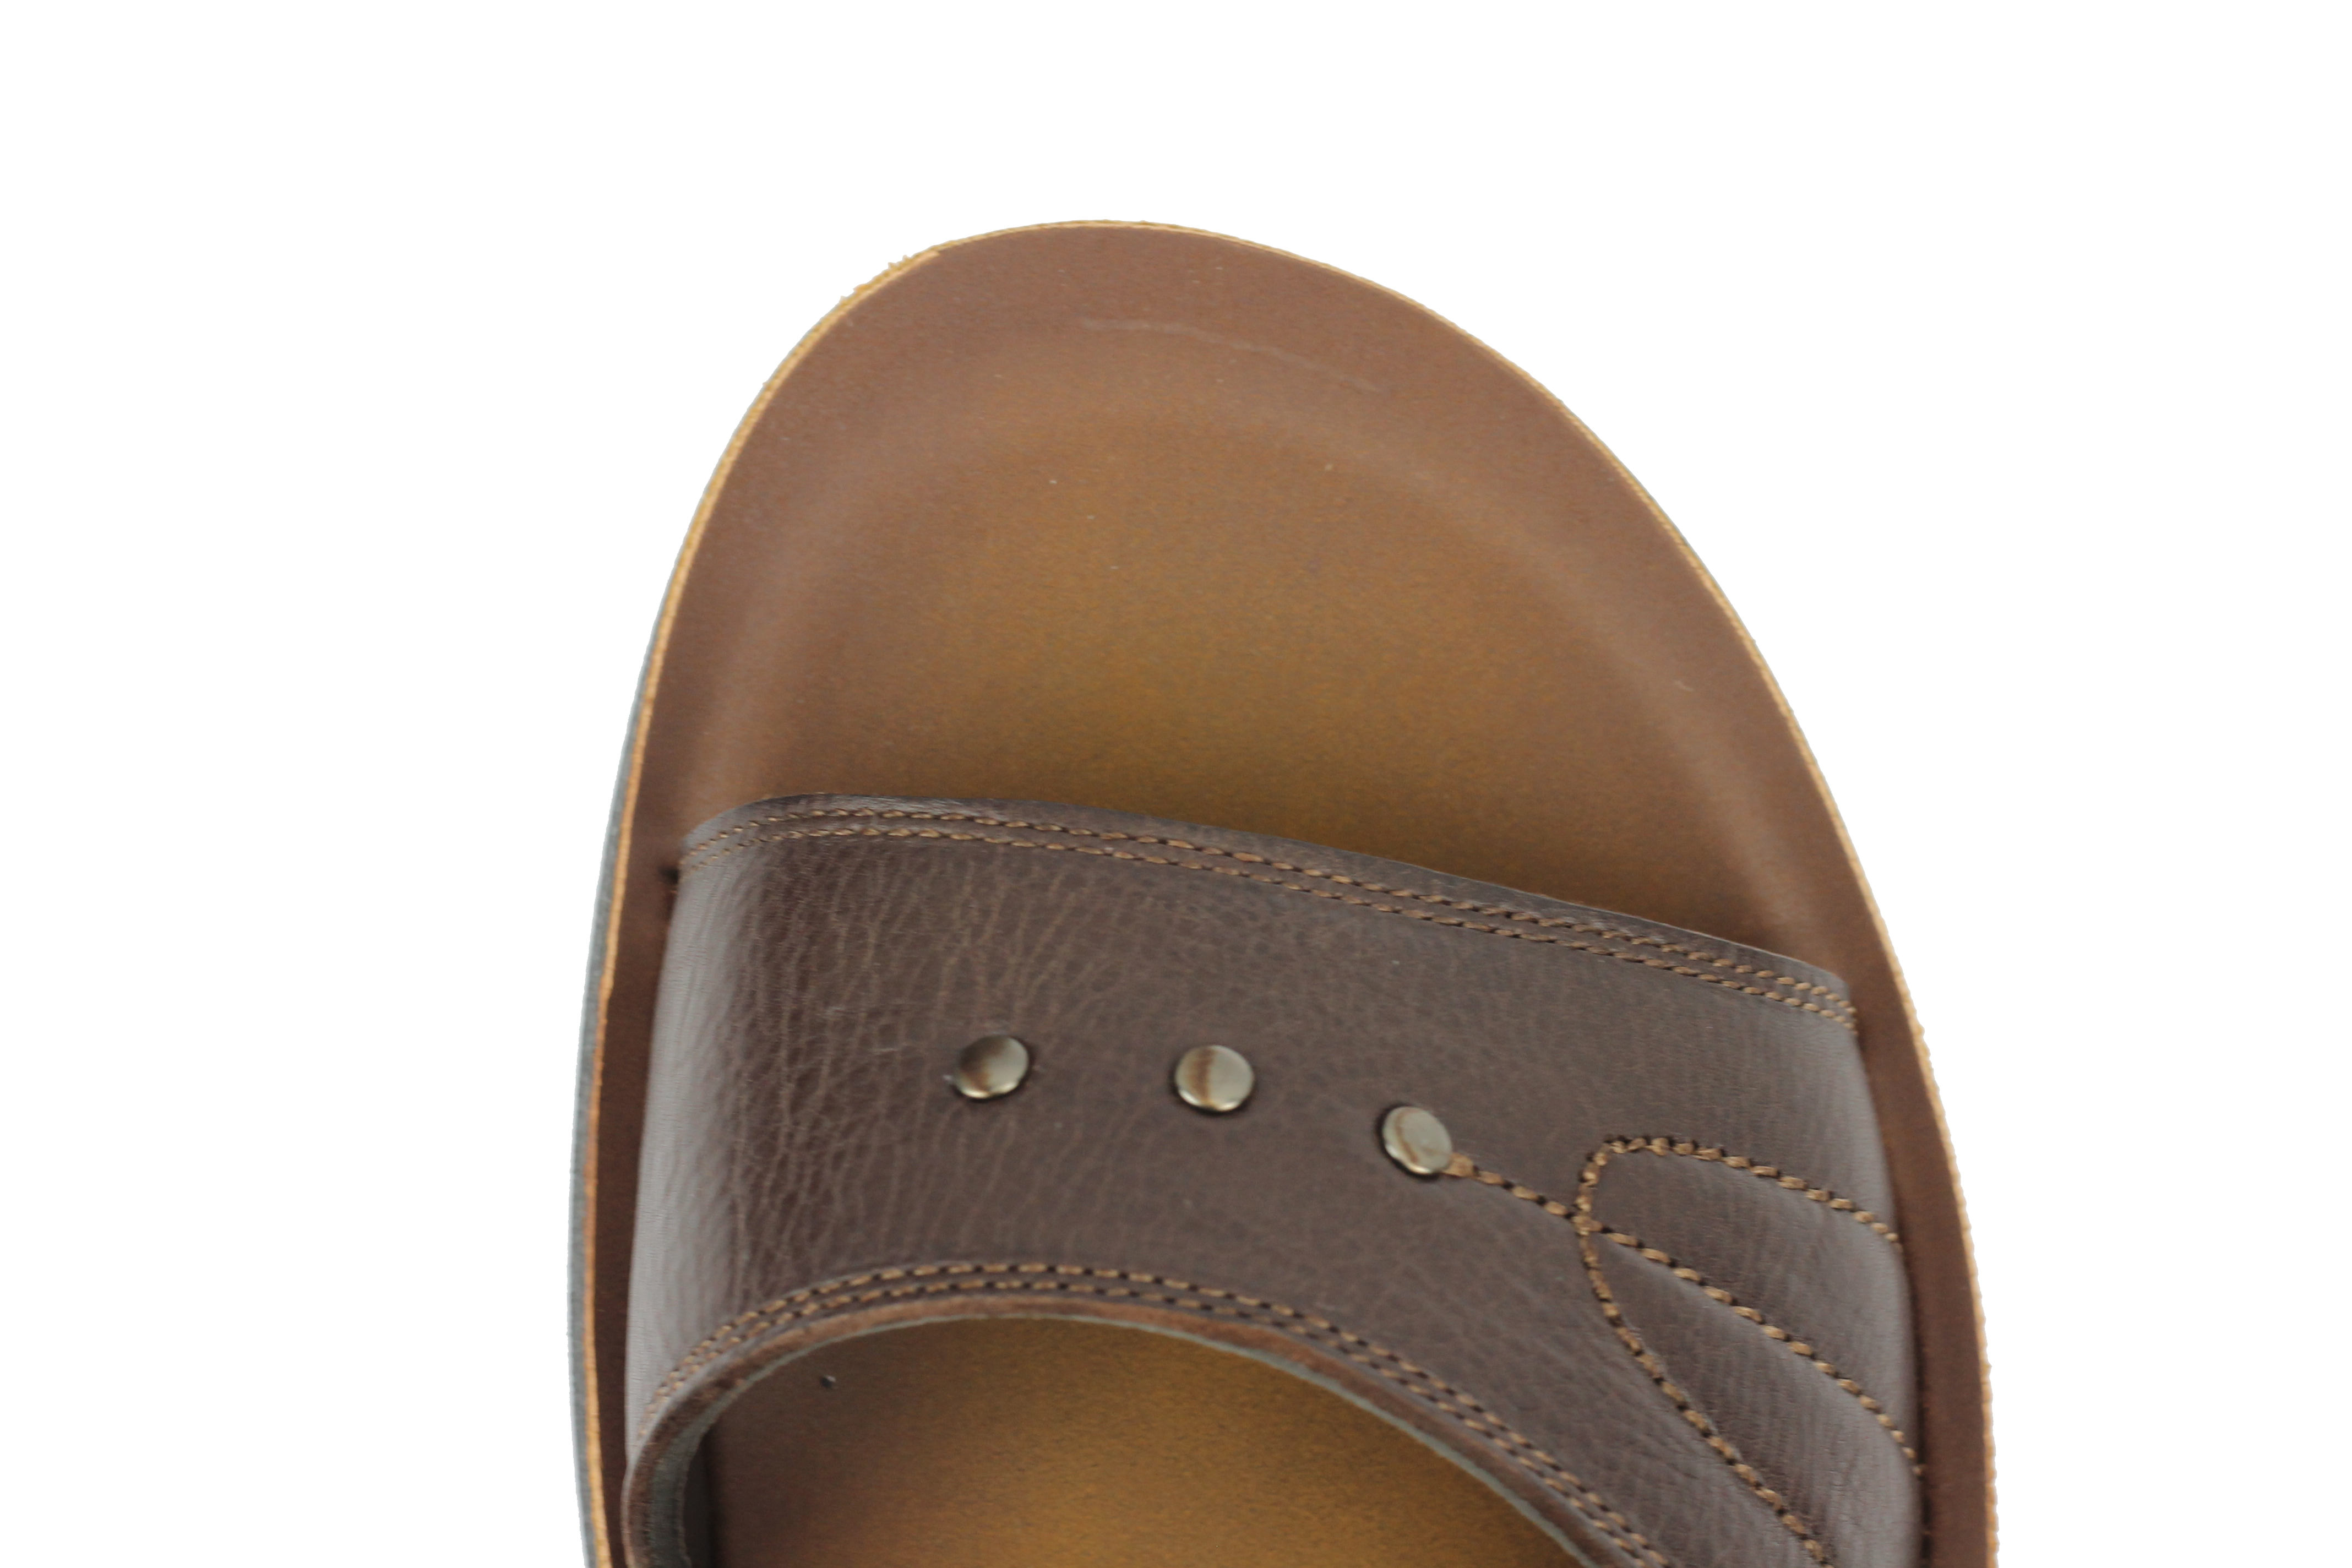 New Mens Big Size Leather Sandals Open Toe Adjustable Strap Slippers Black Brown